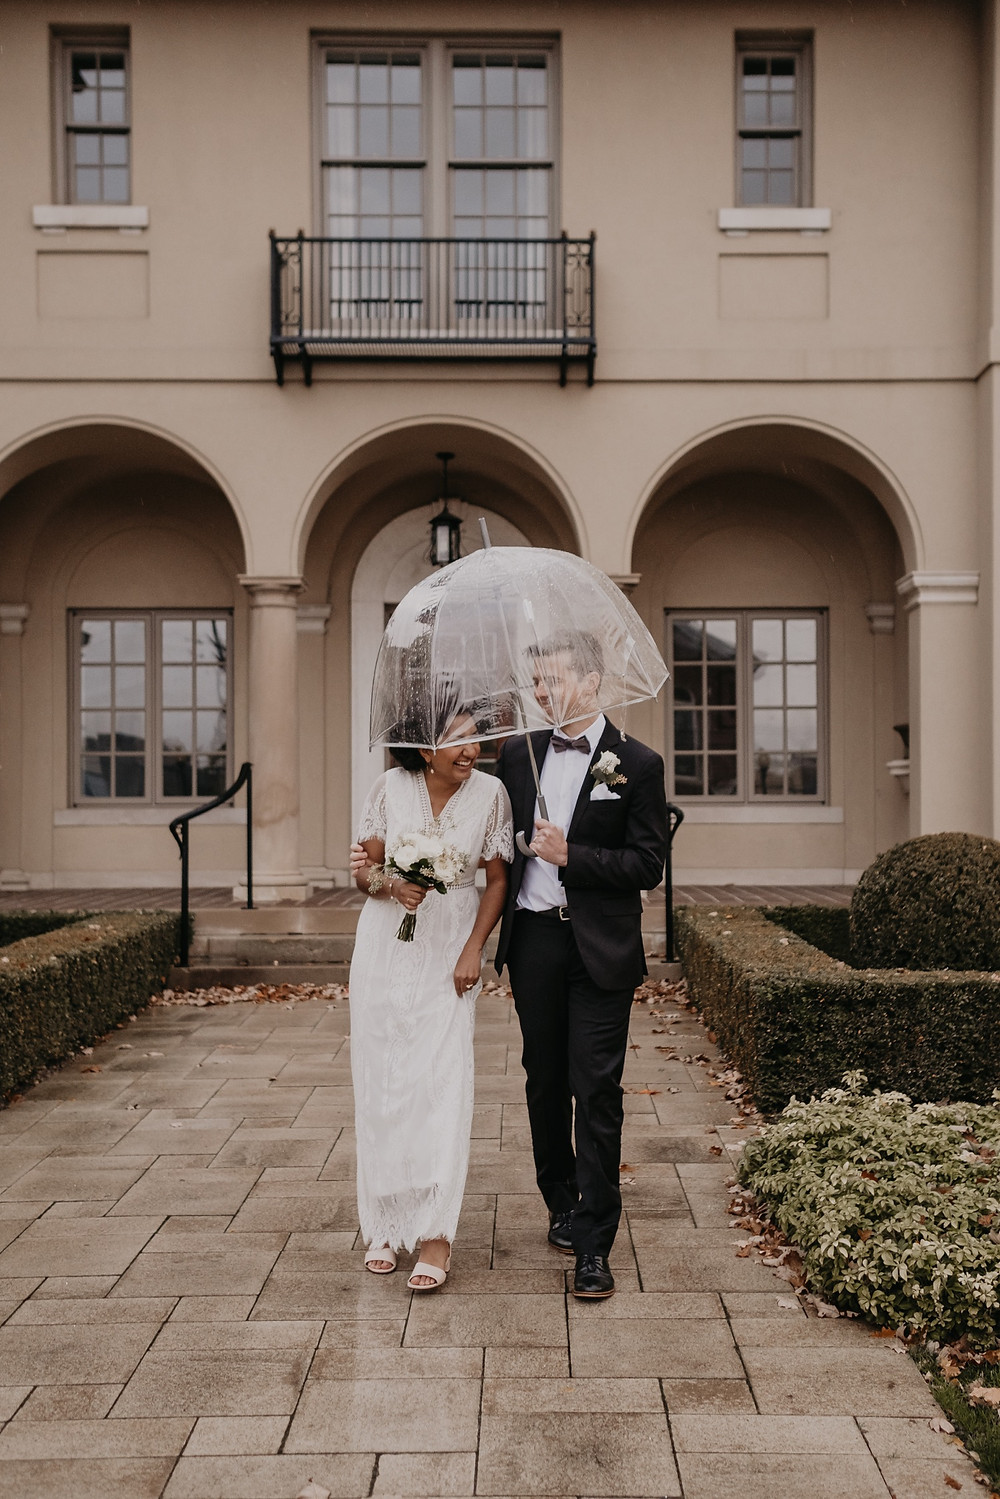 Rainy wedding day in Metro Detroit. Photographed by Nicole Leanne Photography.